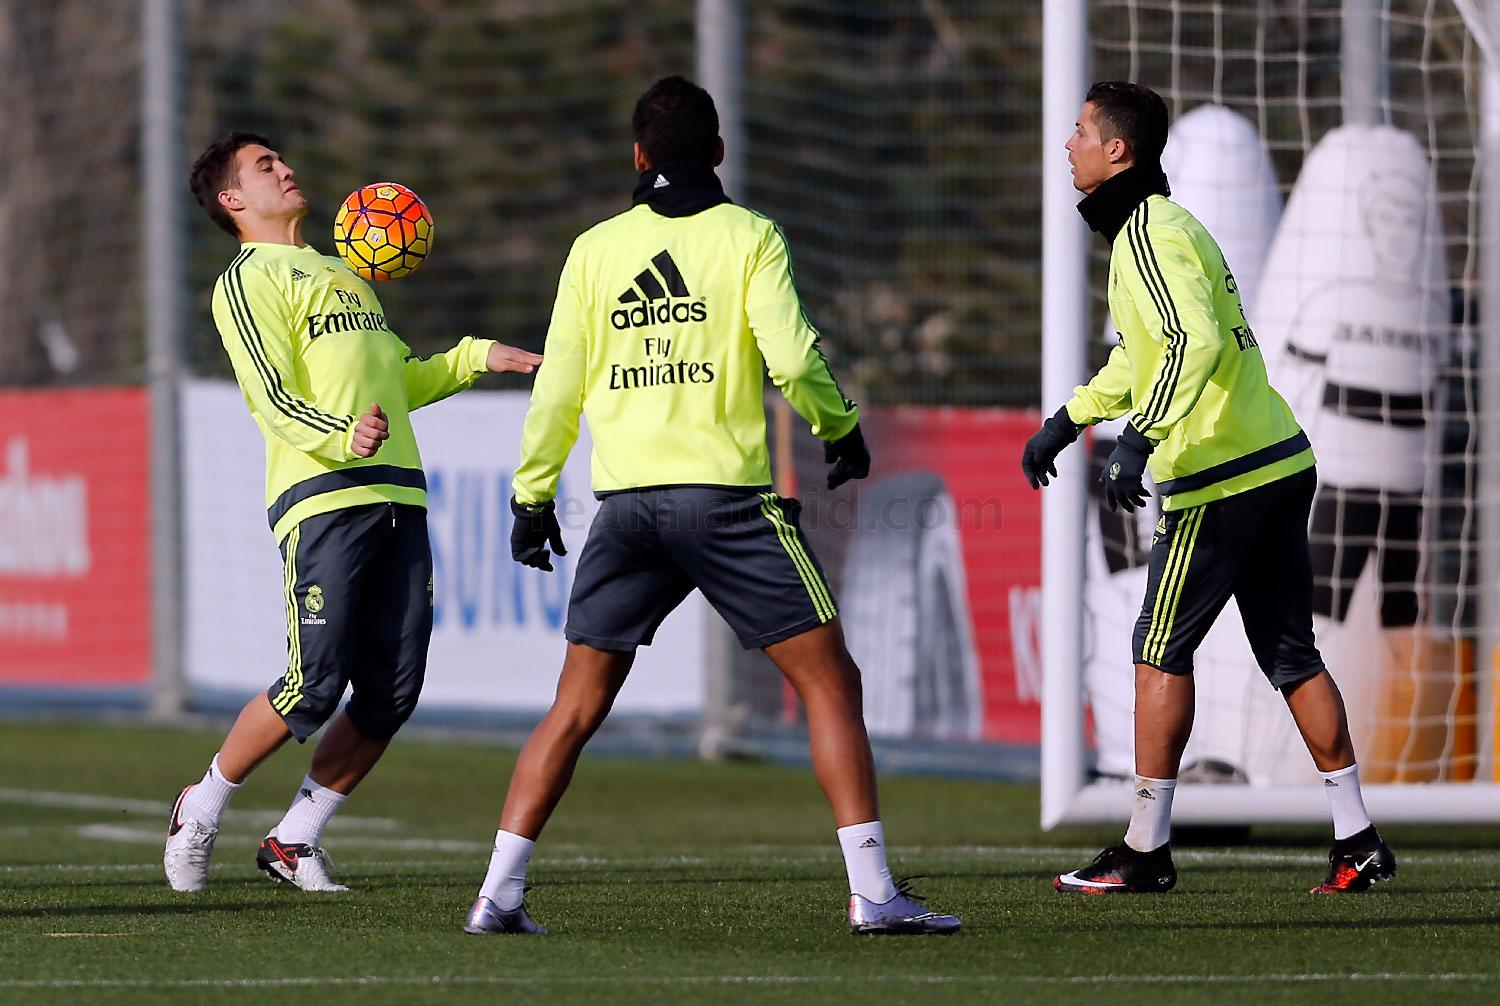 Real Madrid - Entrenamiento del Real Madrid - 30-01-2016